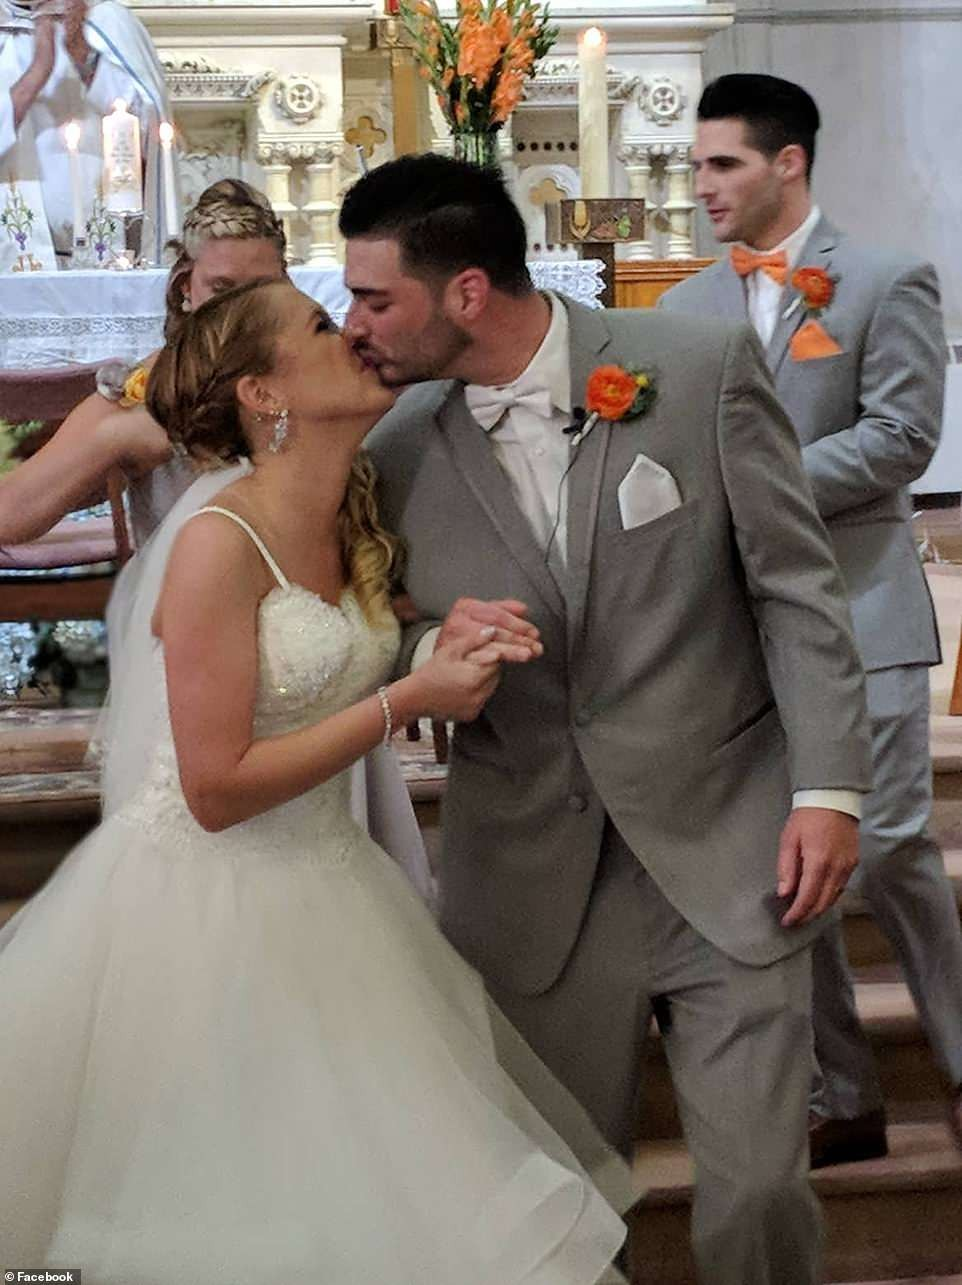 Newlywed couples and young parents among 20 wedding guests killed in limo crash